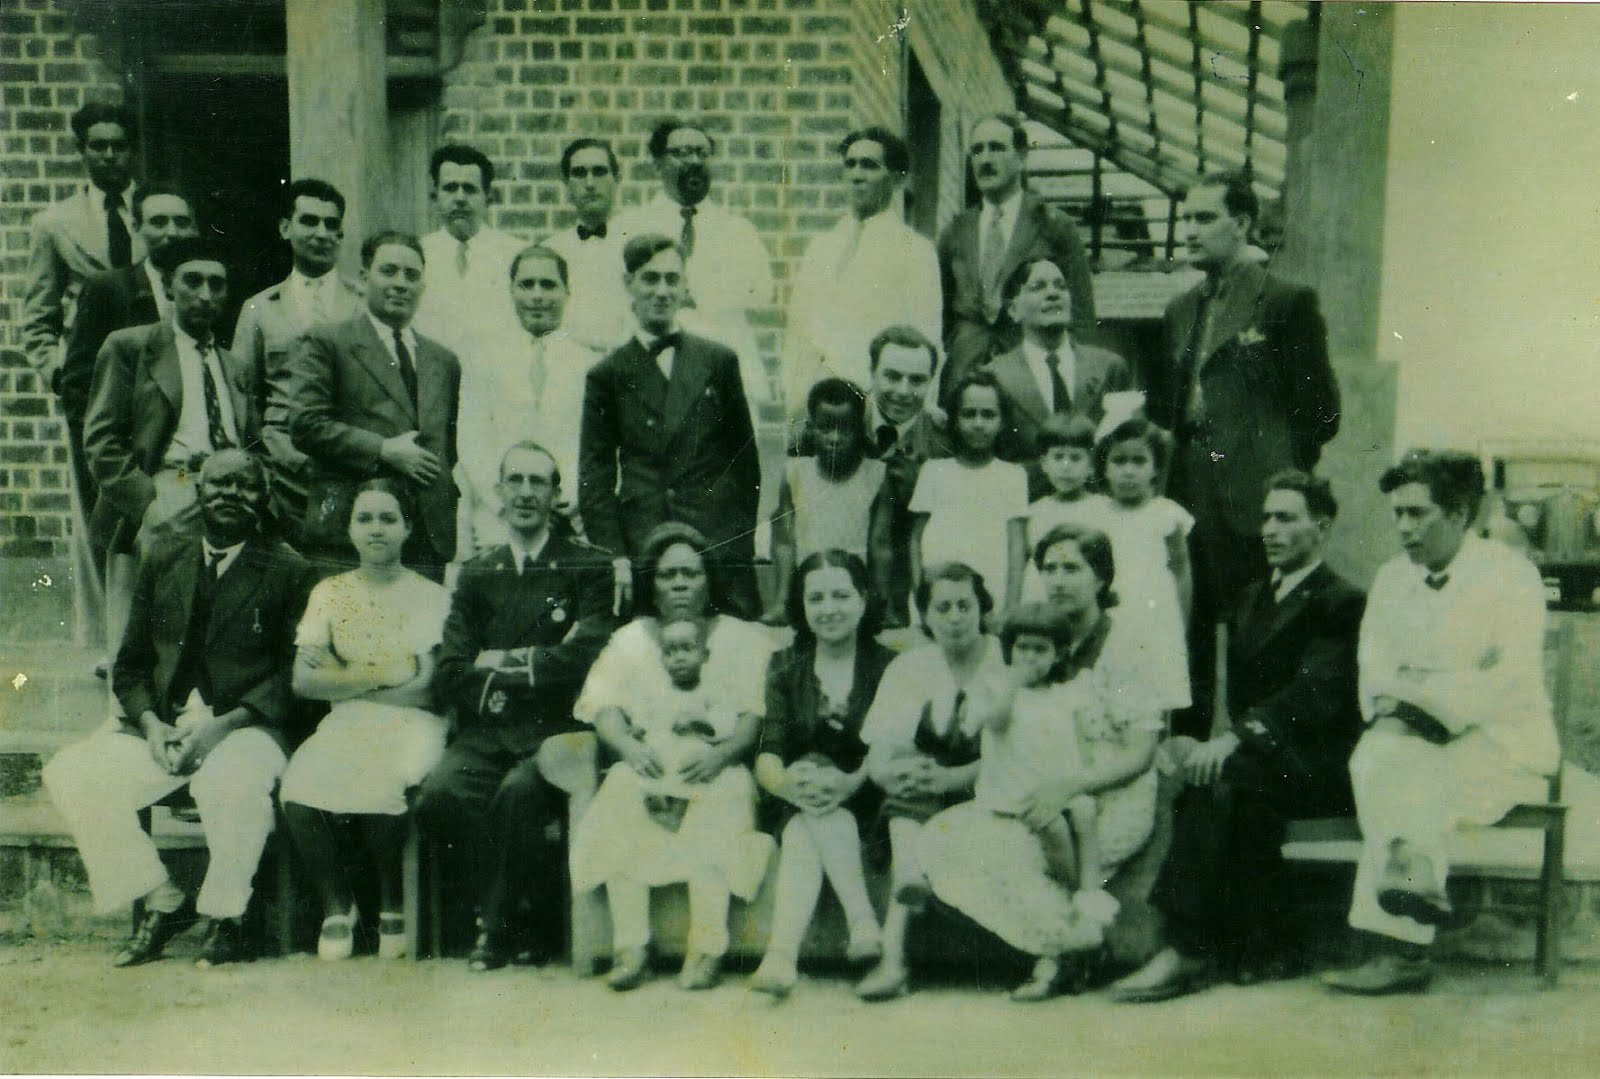 REI DO CONGO D. PEDRO VII (1940)